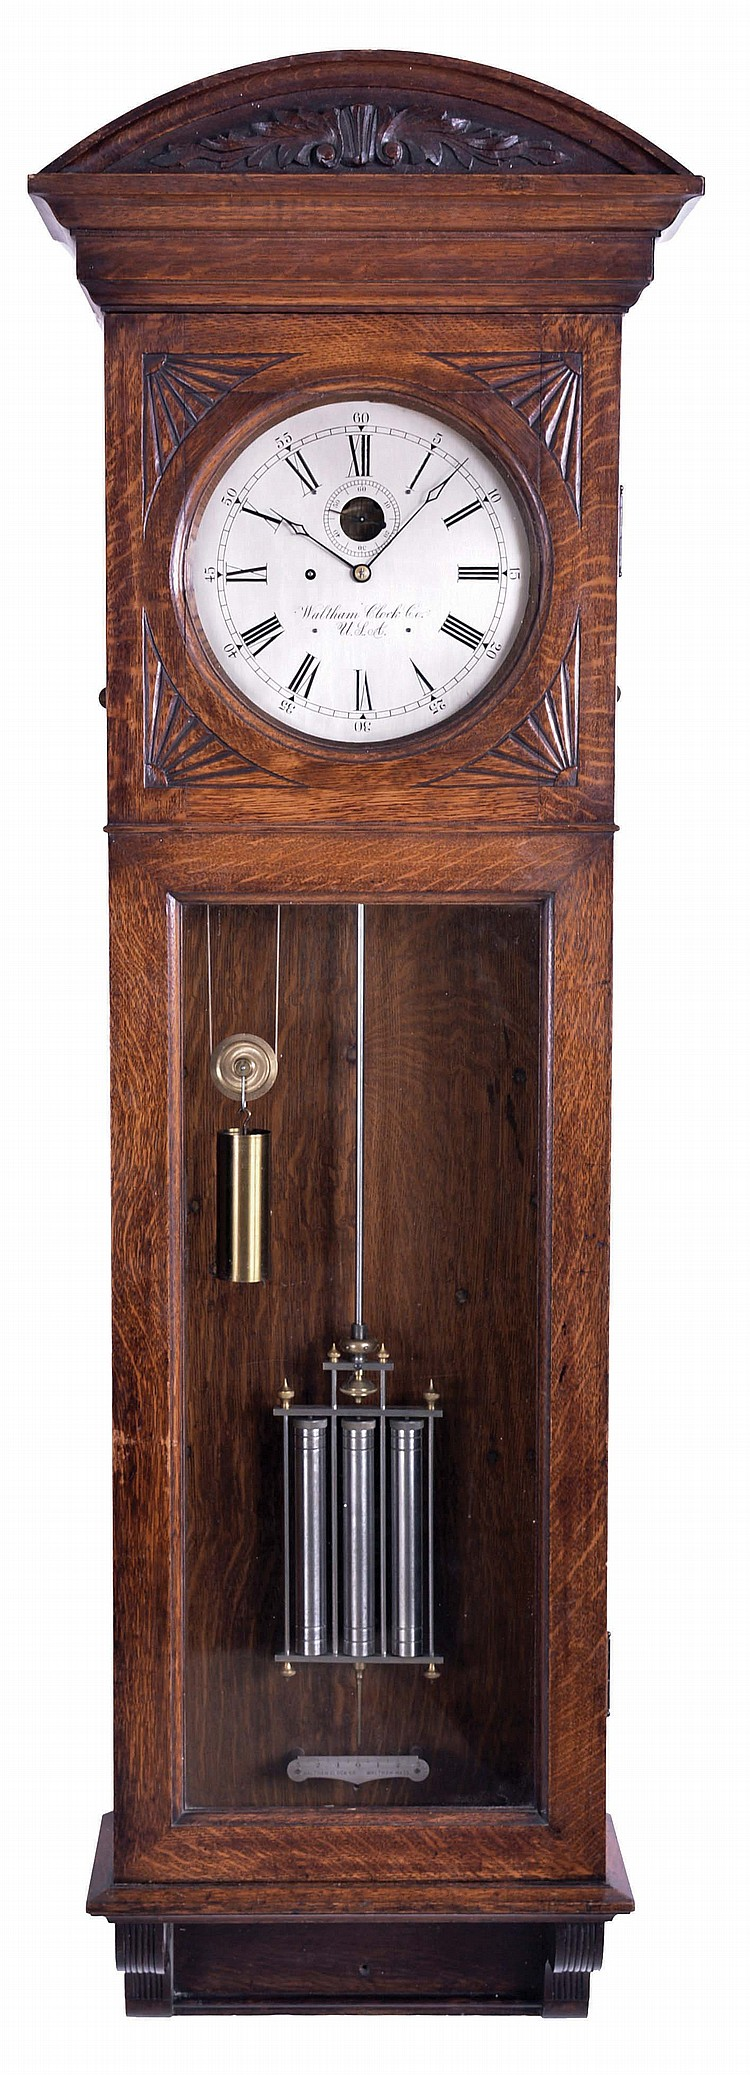 Waltham Clock Co Waltham Mass Quot Regulator No 14 Quot Jewel